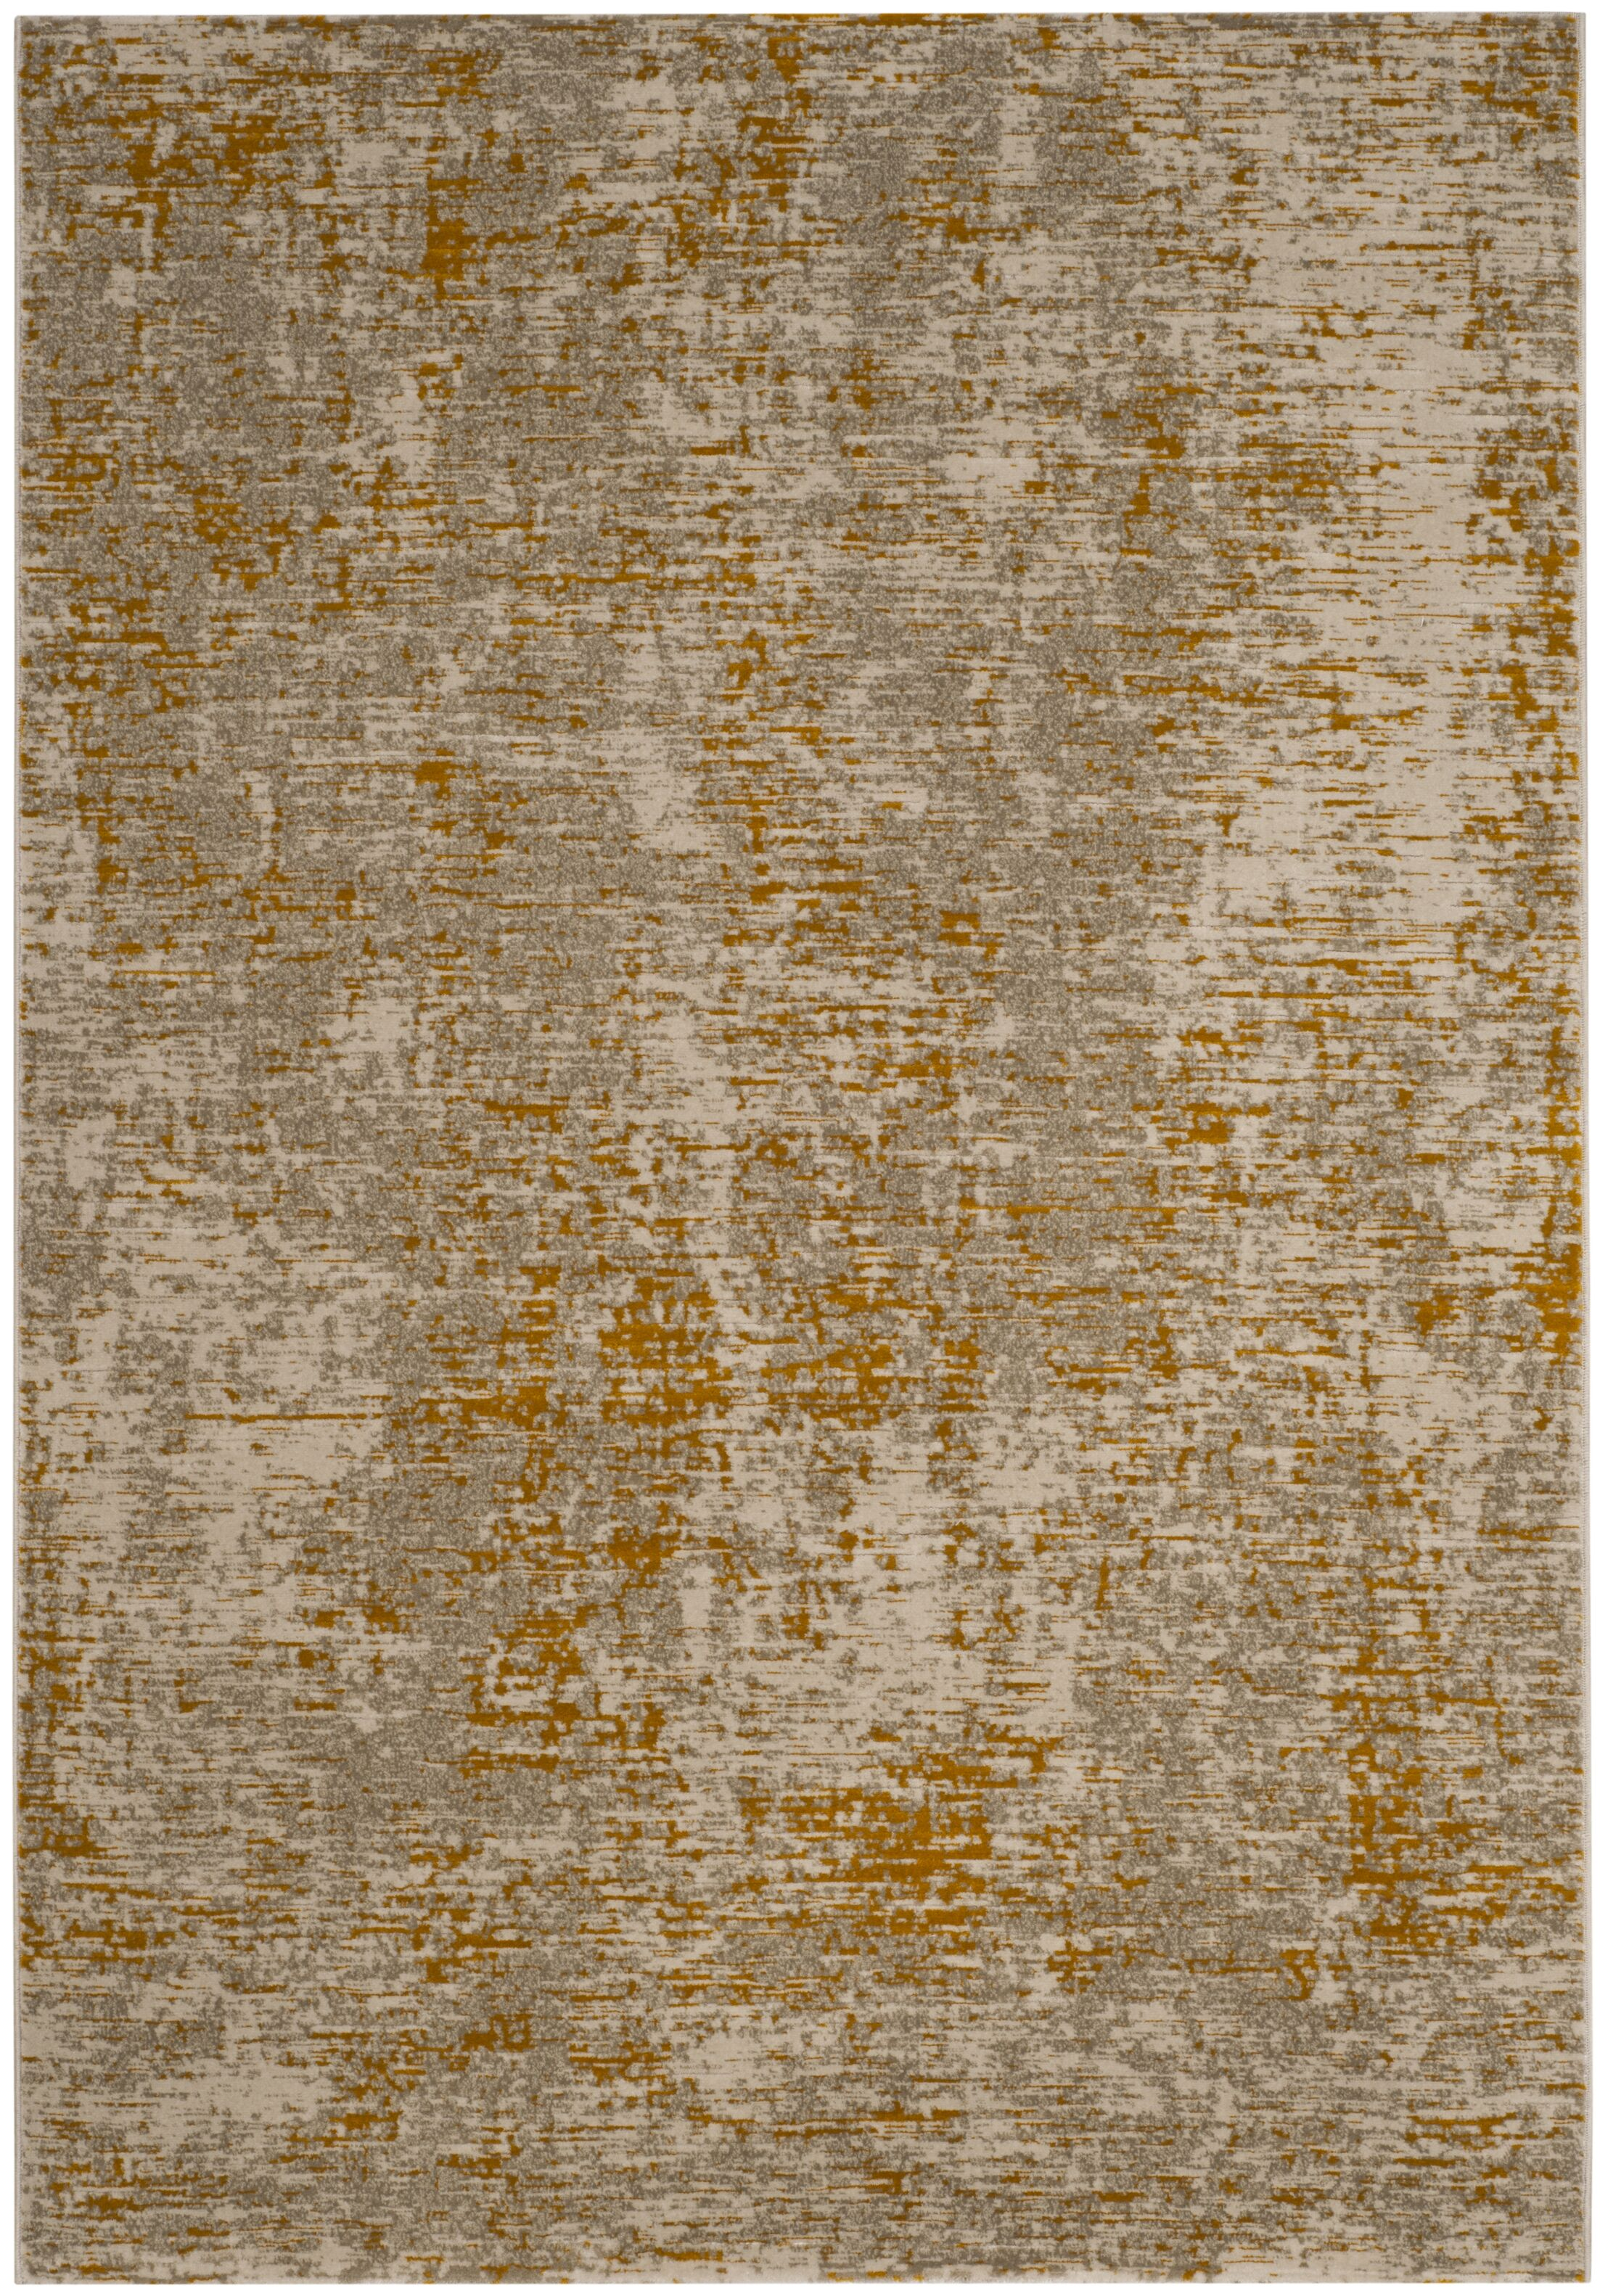 Sorrentino Gray/Gold Area Rug Rug Size: Rectangle 6' x 9'